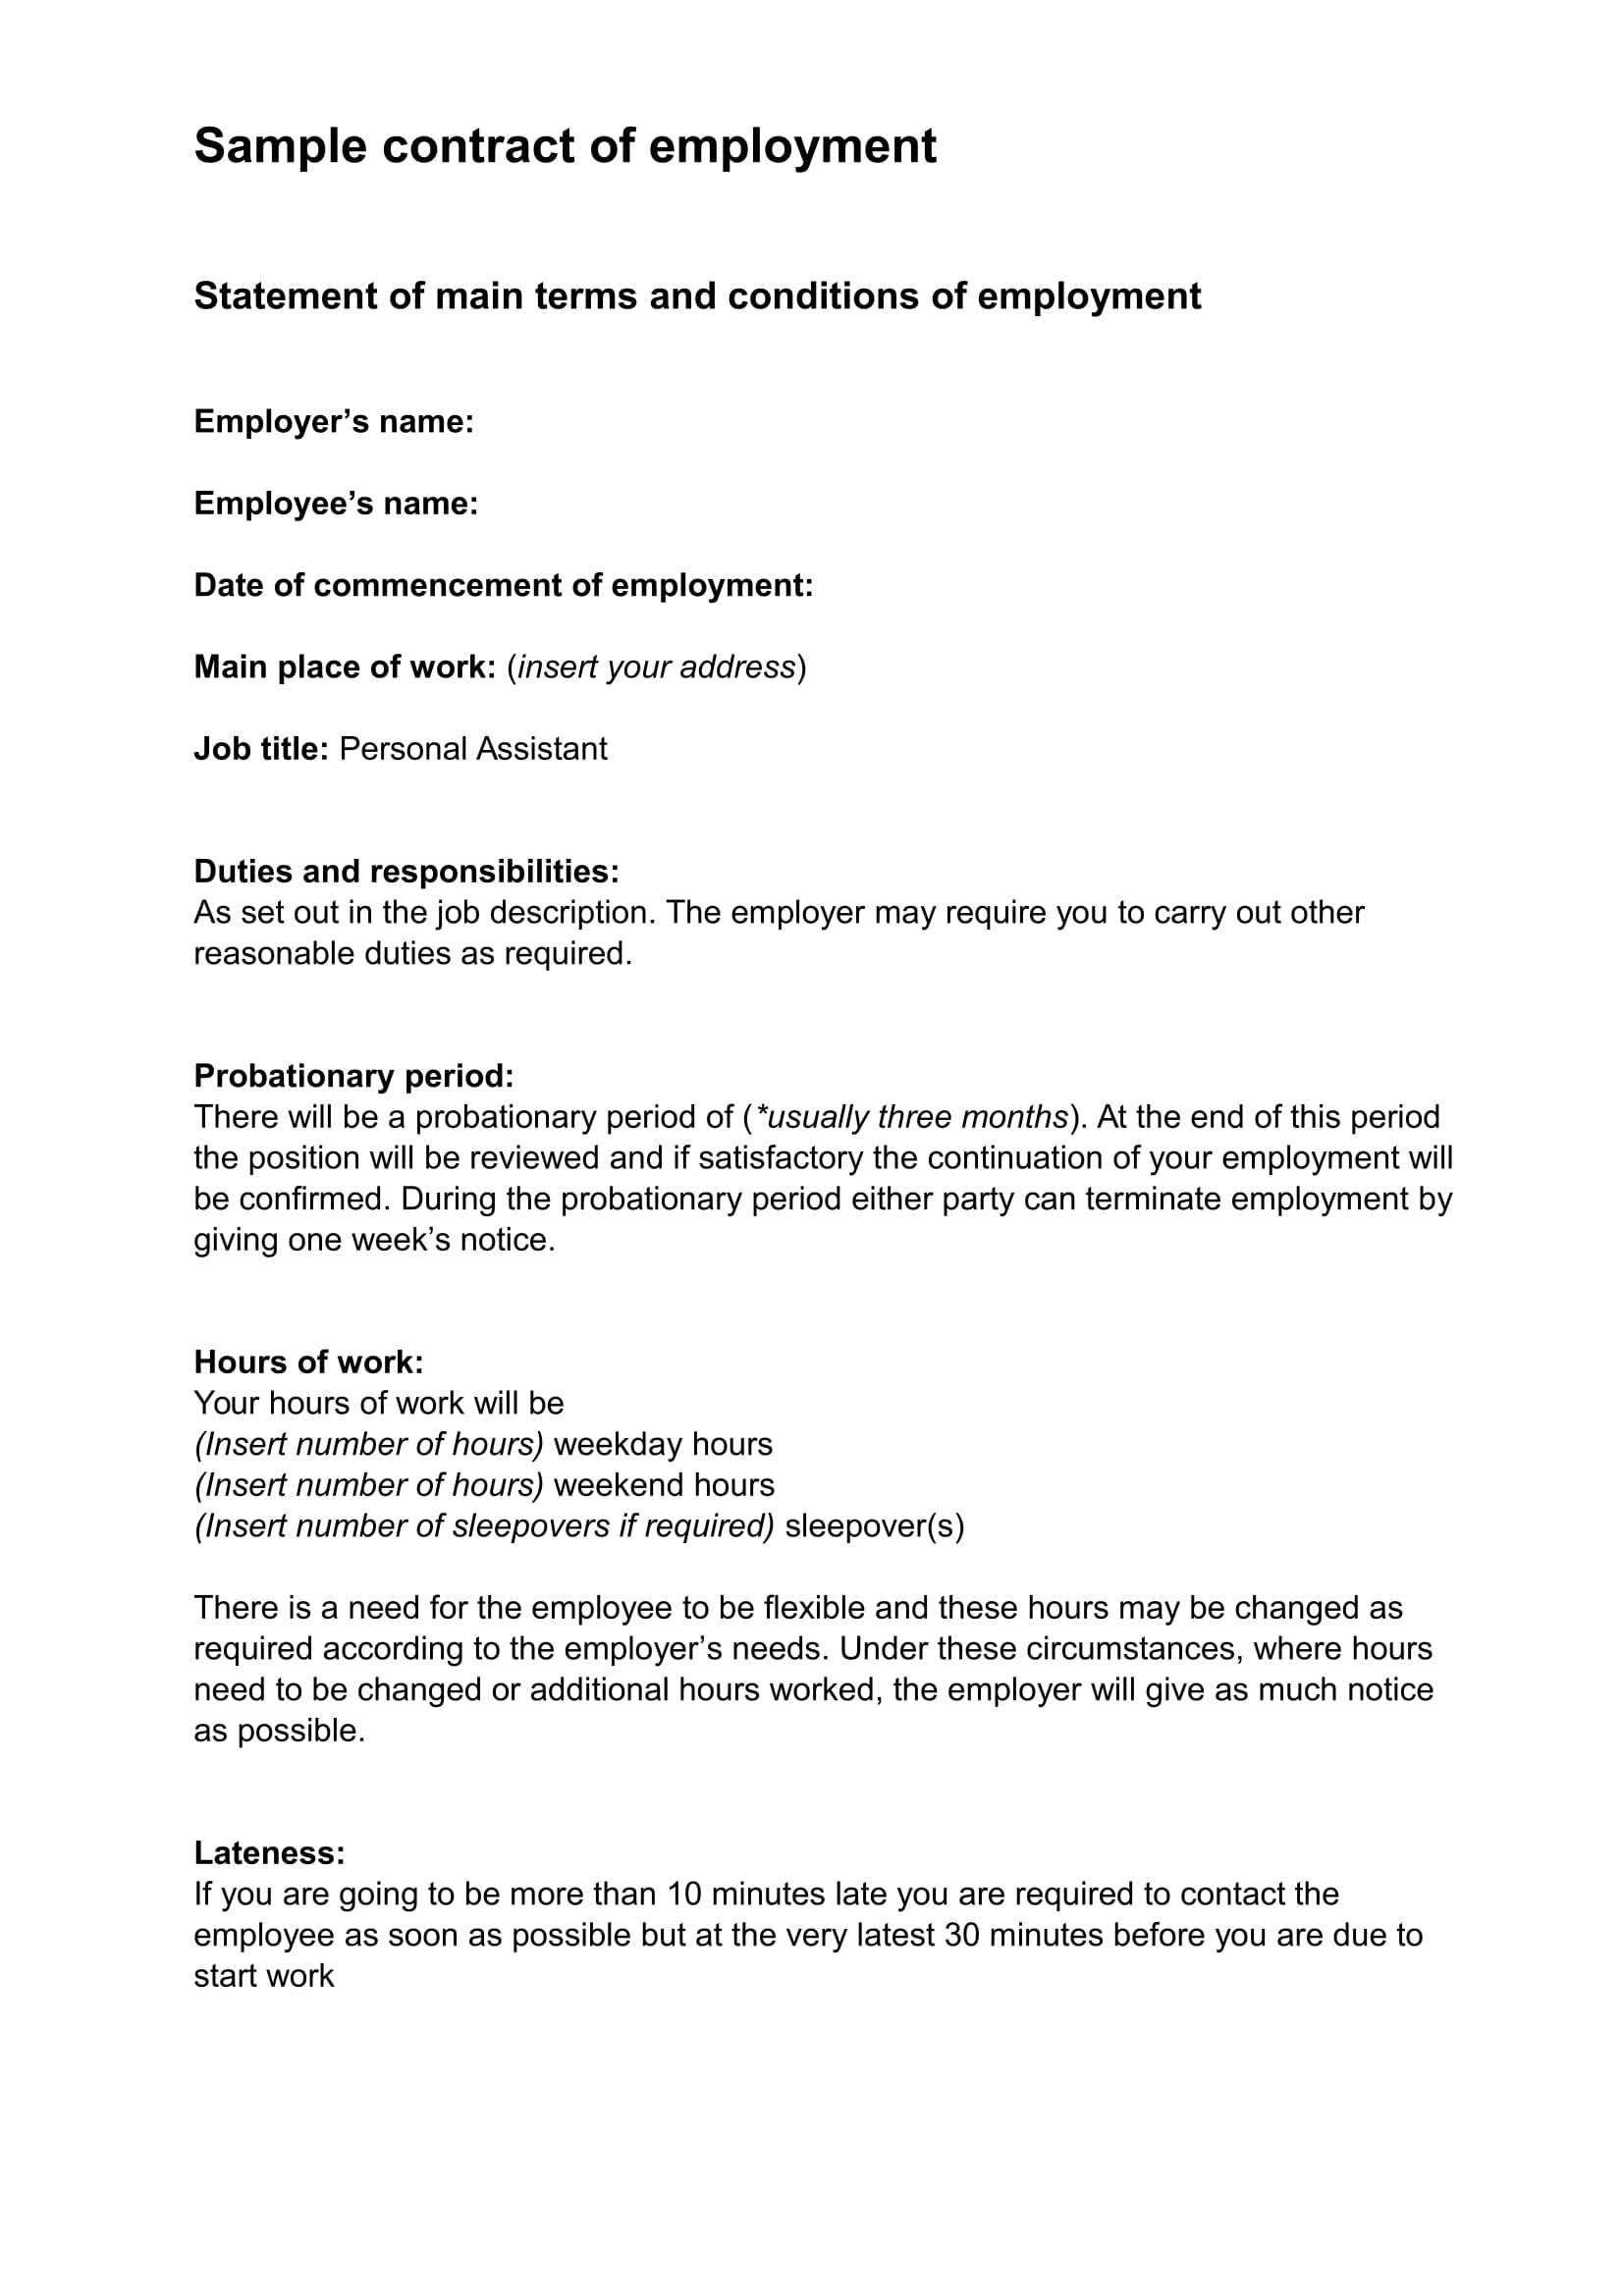 basic contract of employment template - 20 contract examples word